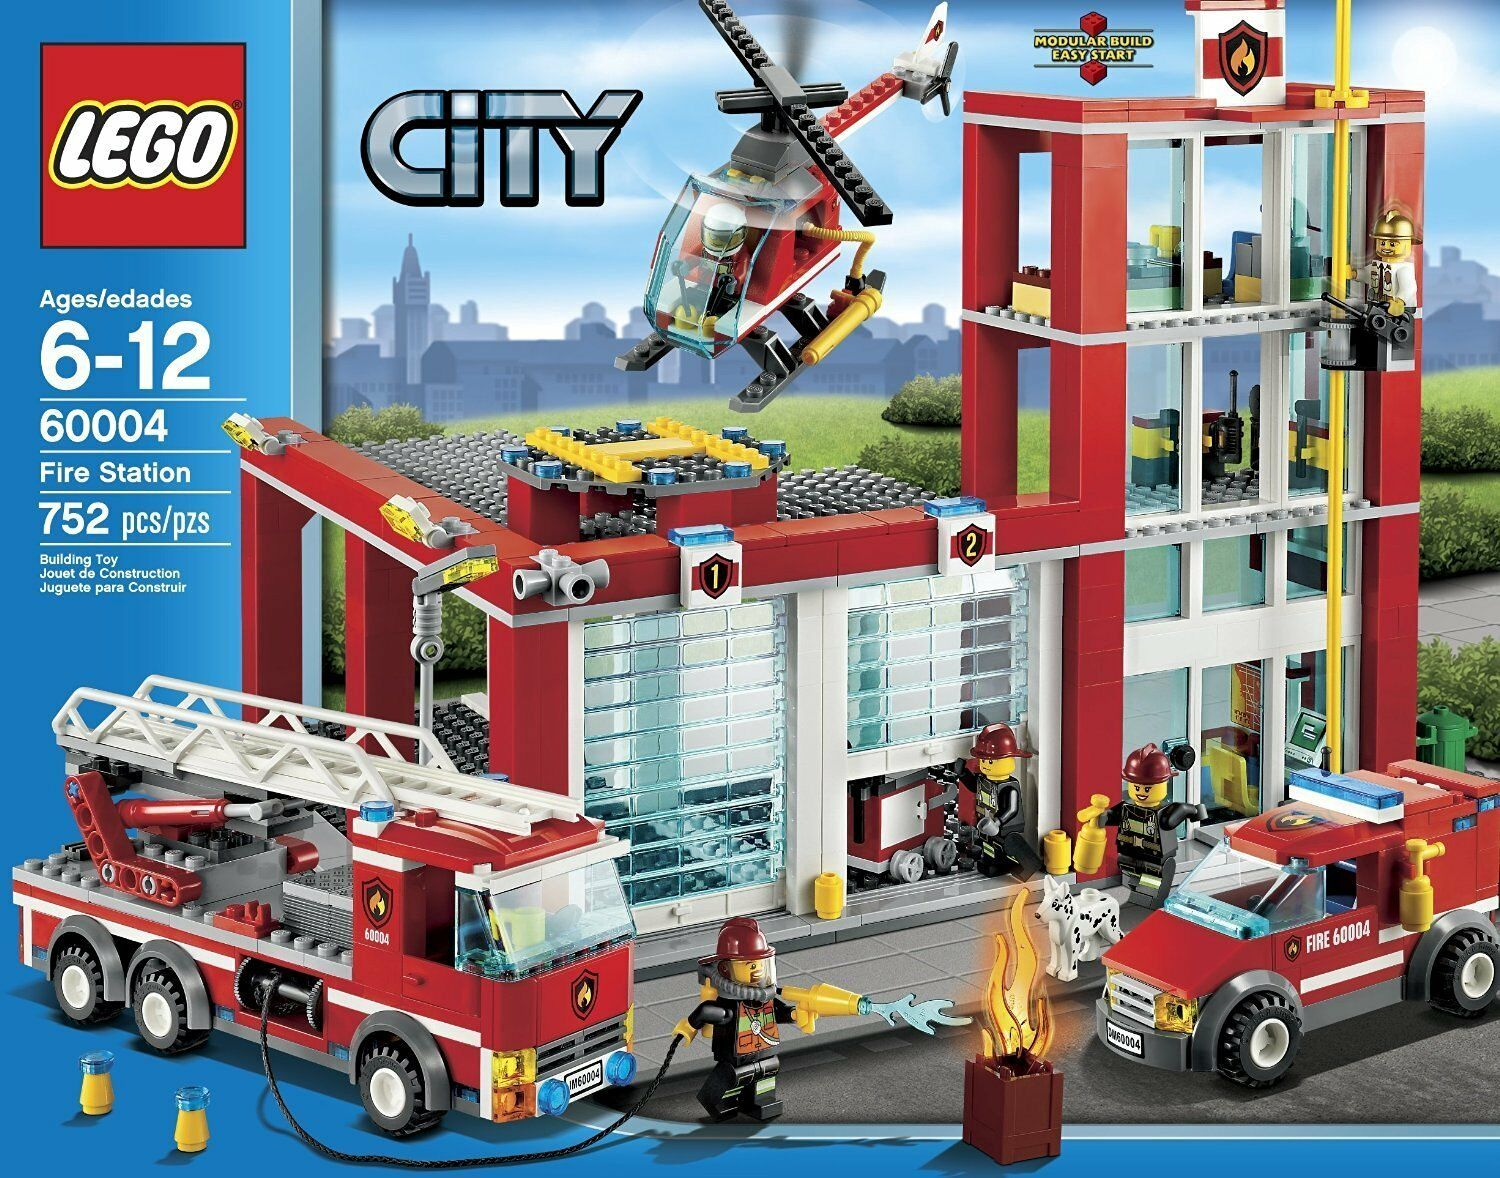 City 406f36 Box Set Station Retired New Fire In 60004 Lego OXTilwuZPk